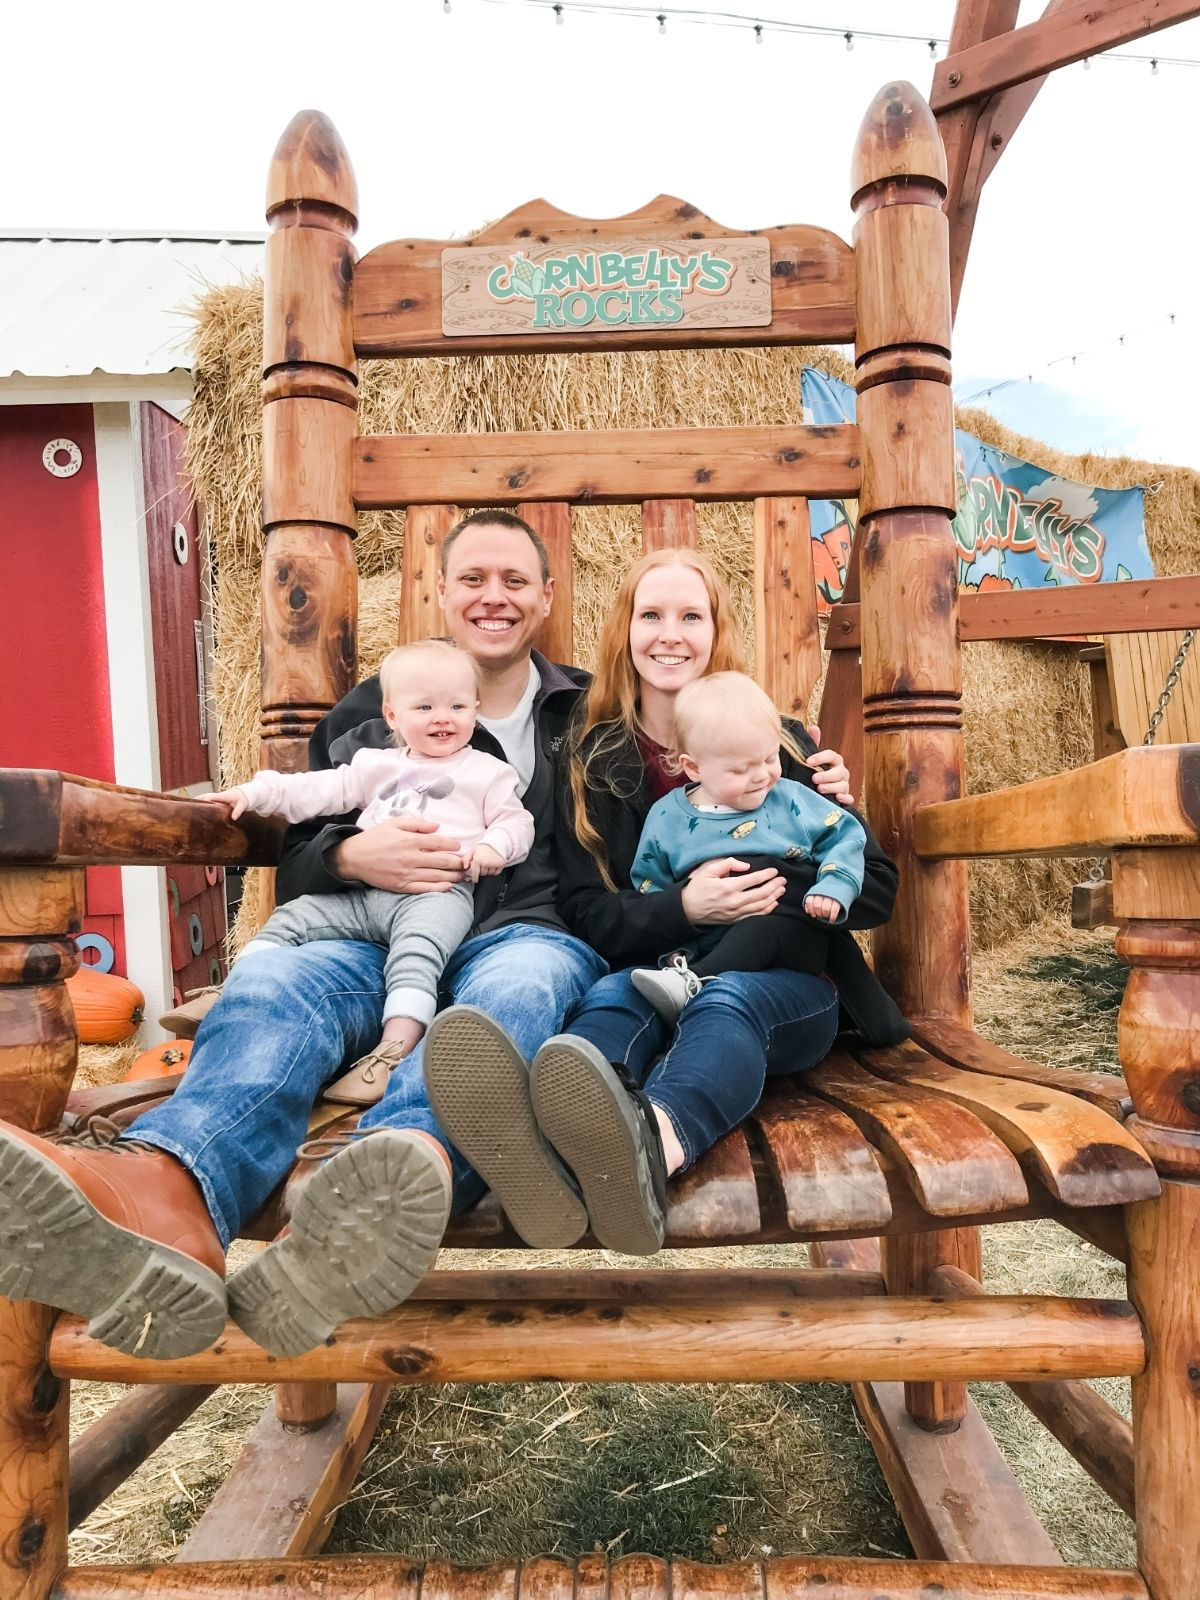 Adam and Liz and twins sitting in big wooden chair at Cornbelly's